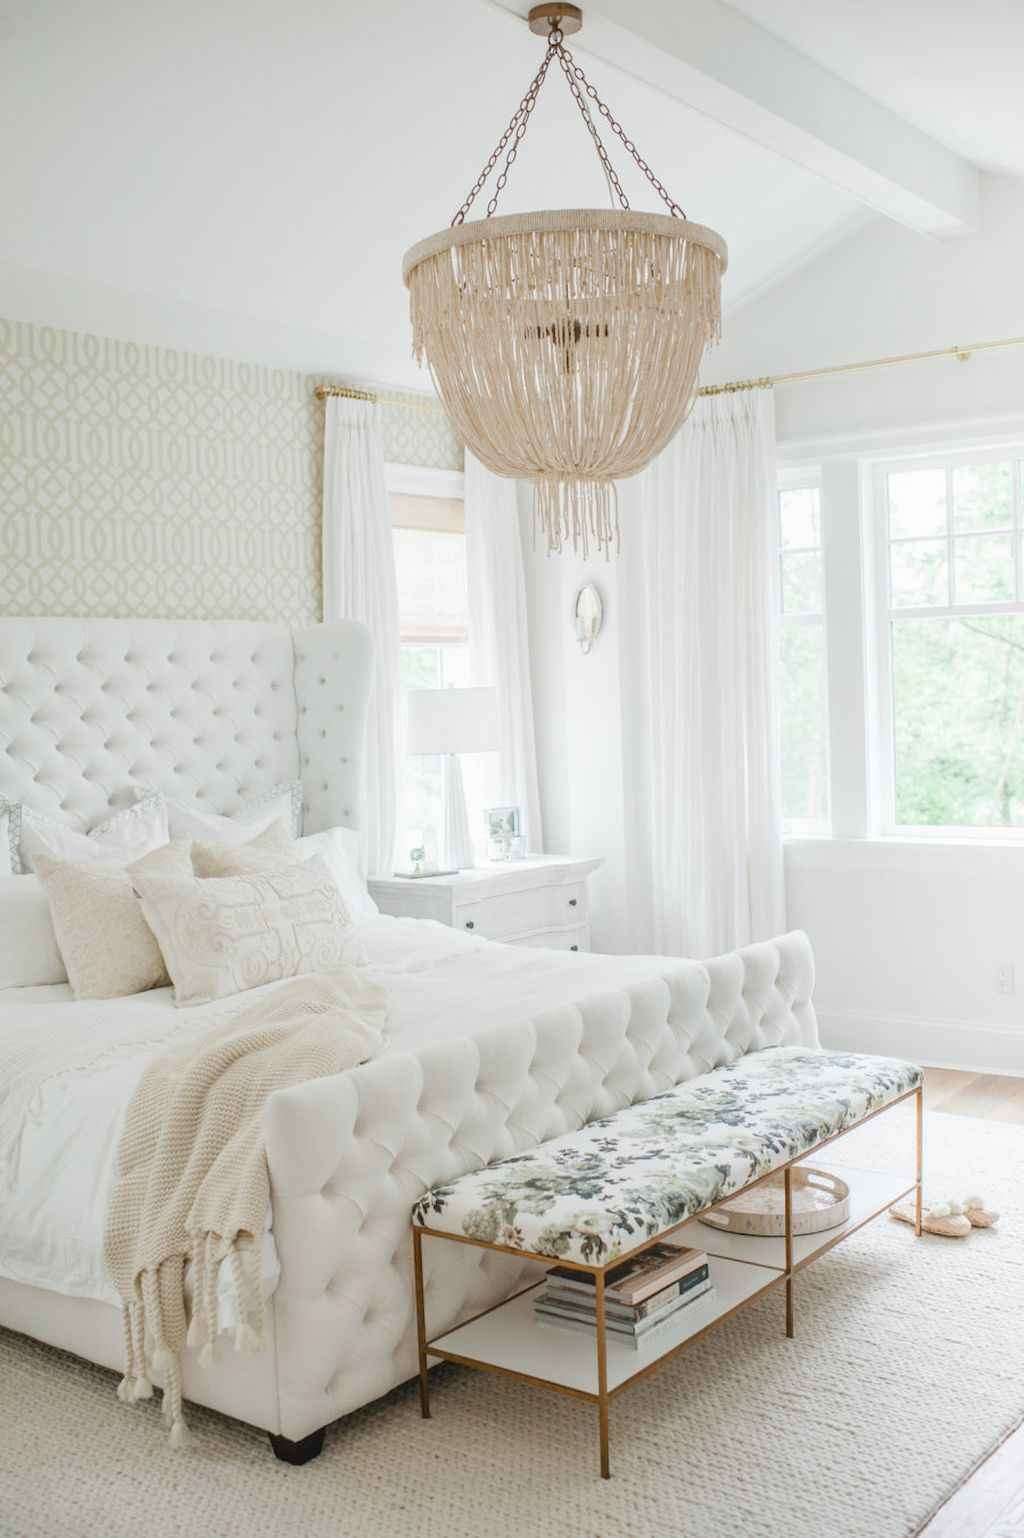 Couples first apartment decorating ideas (57)